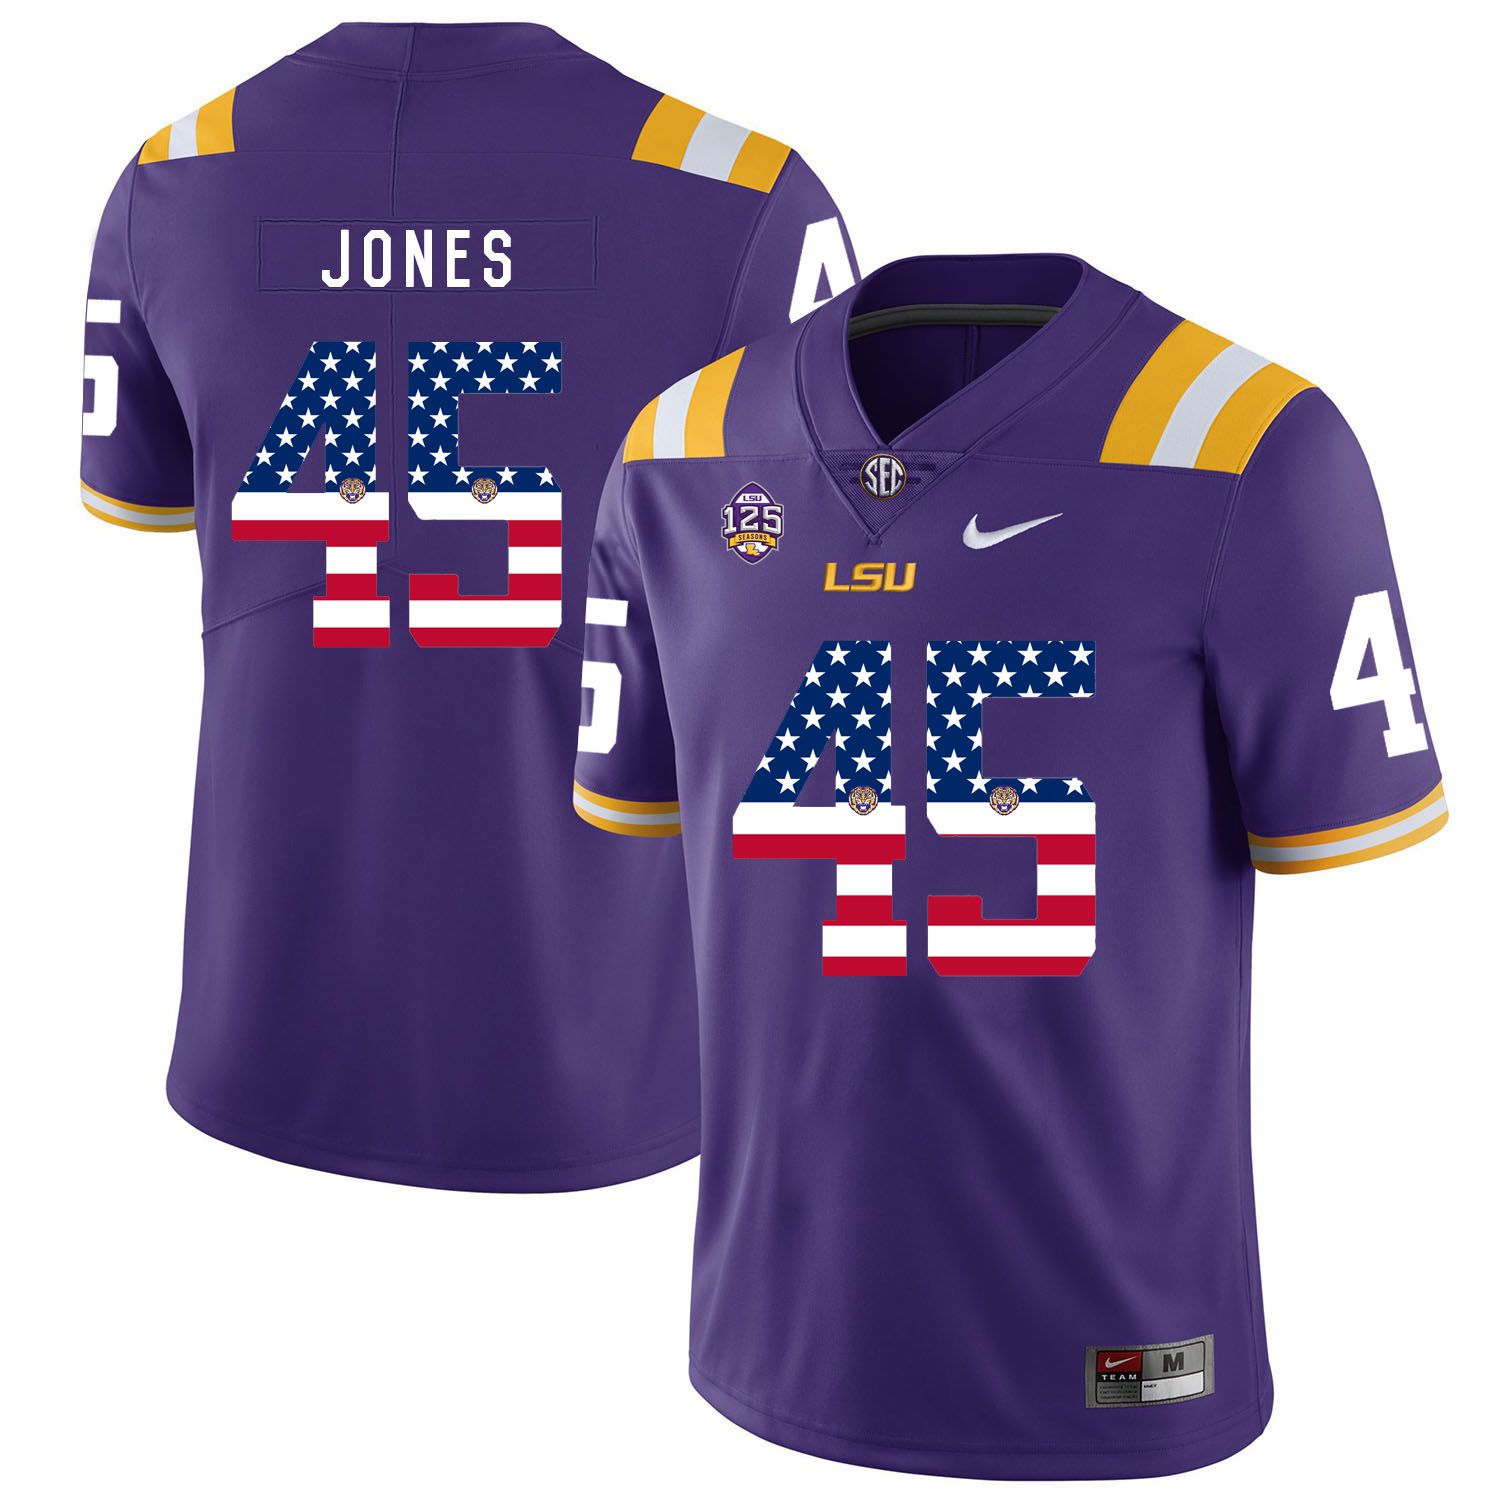 Men LSU Tigers 45 Jones Purple Flag Customized NCAA Jerseys